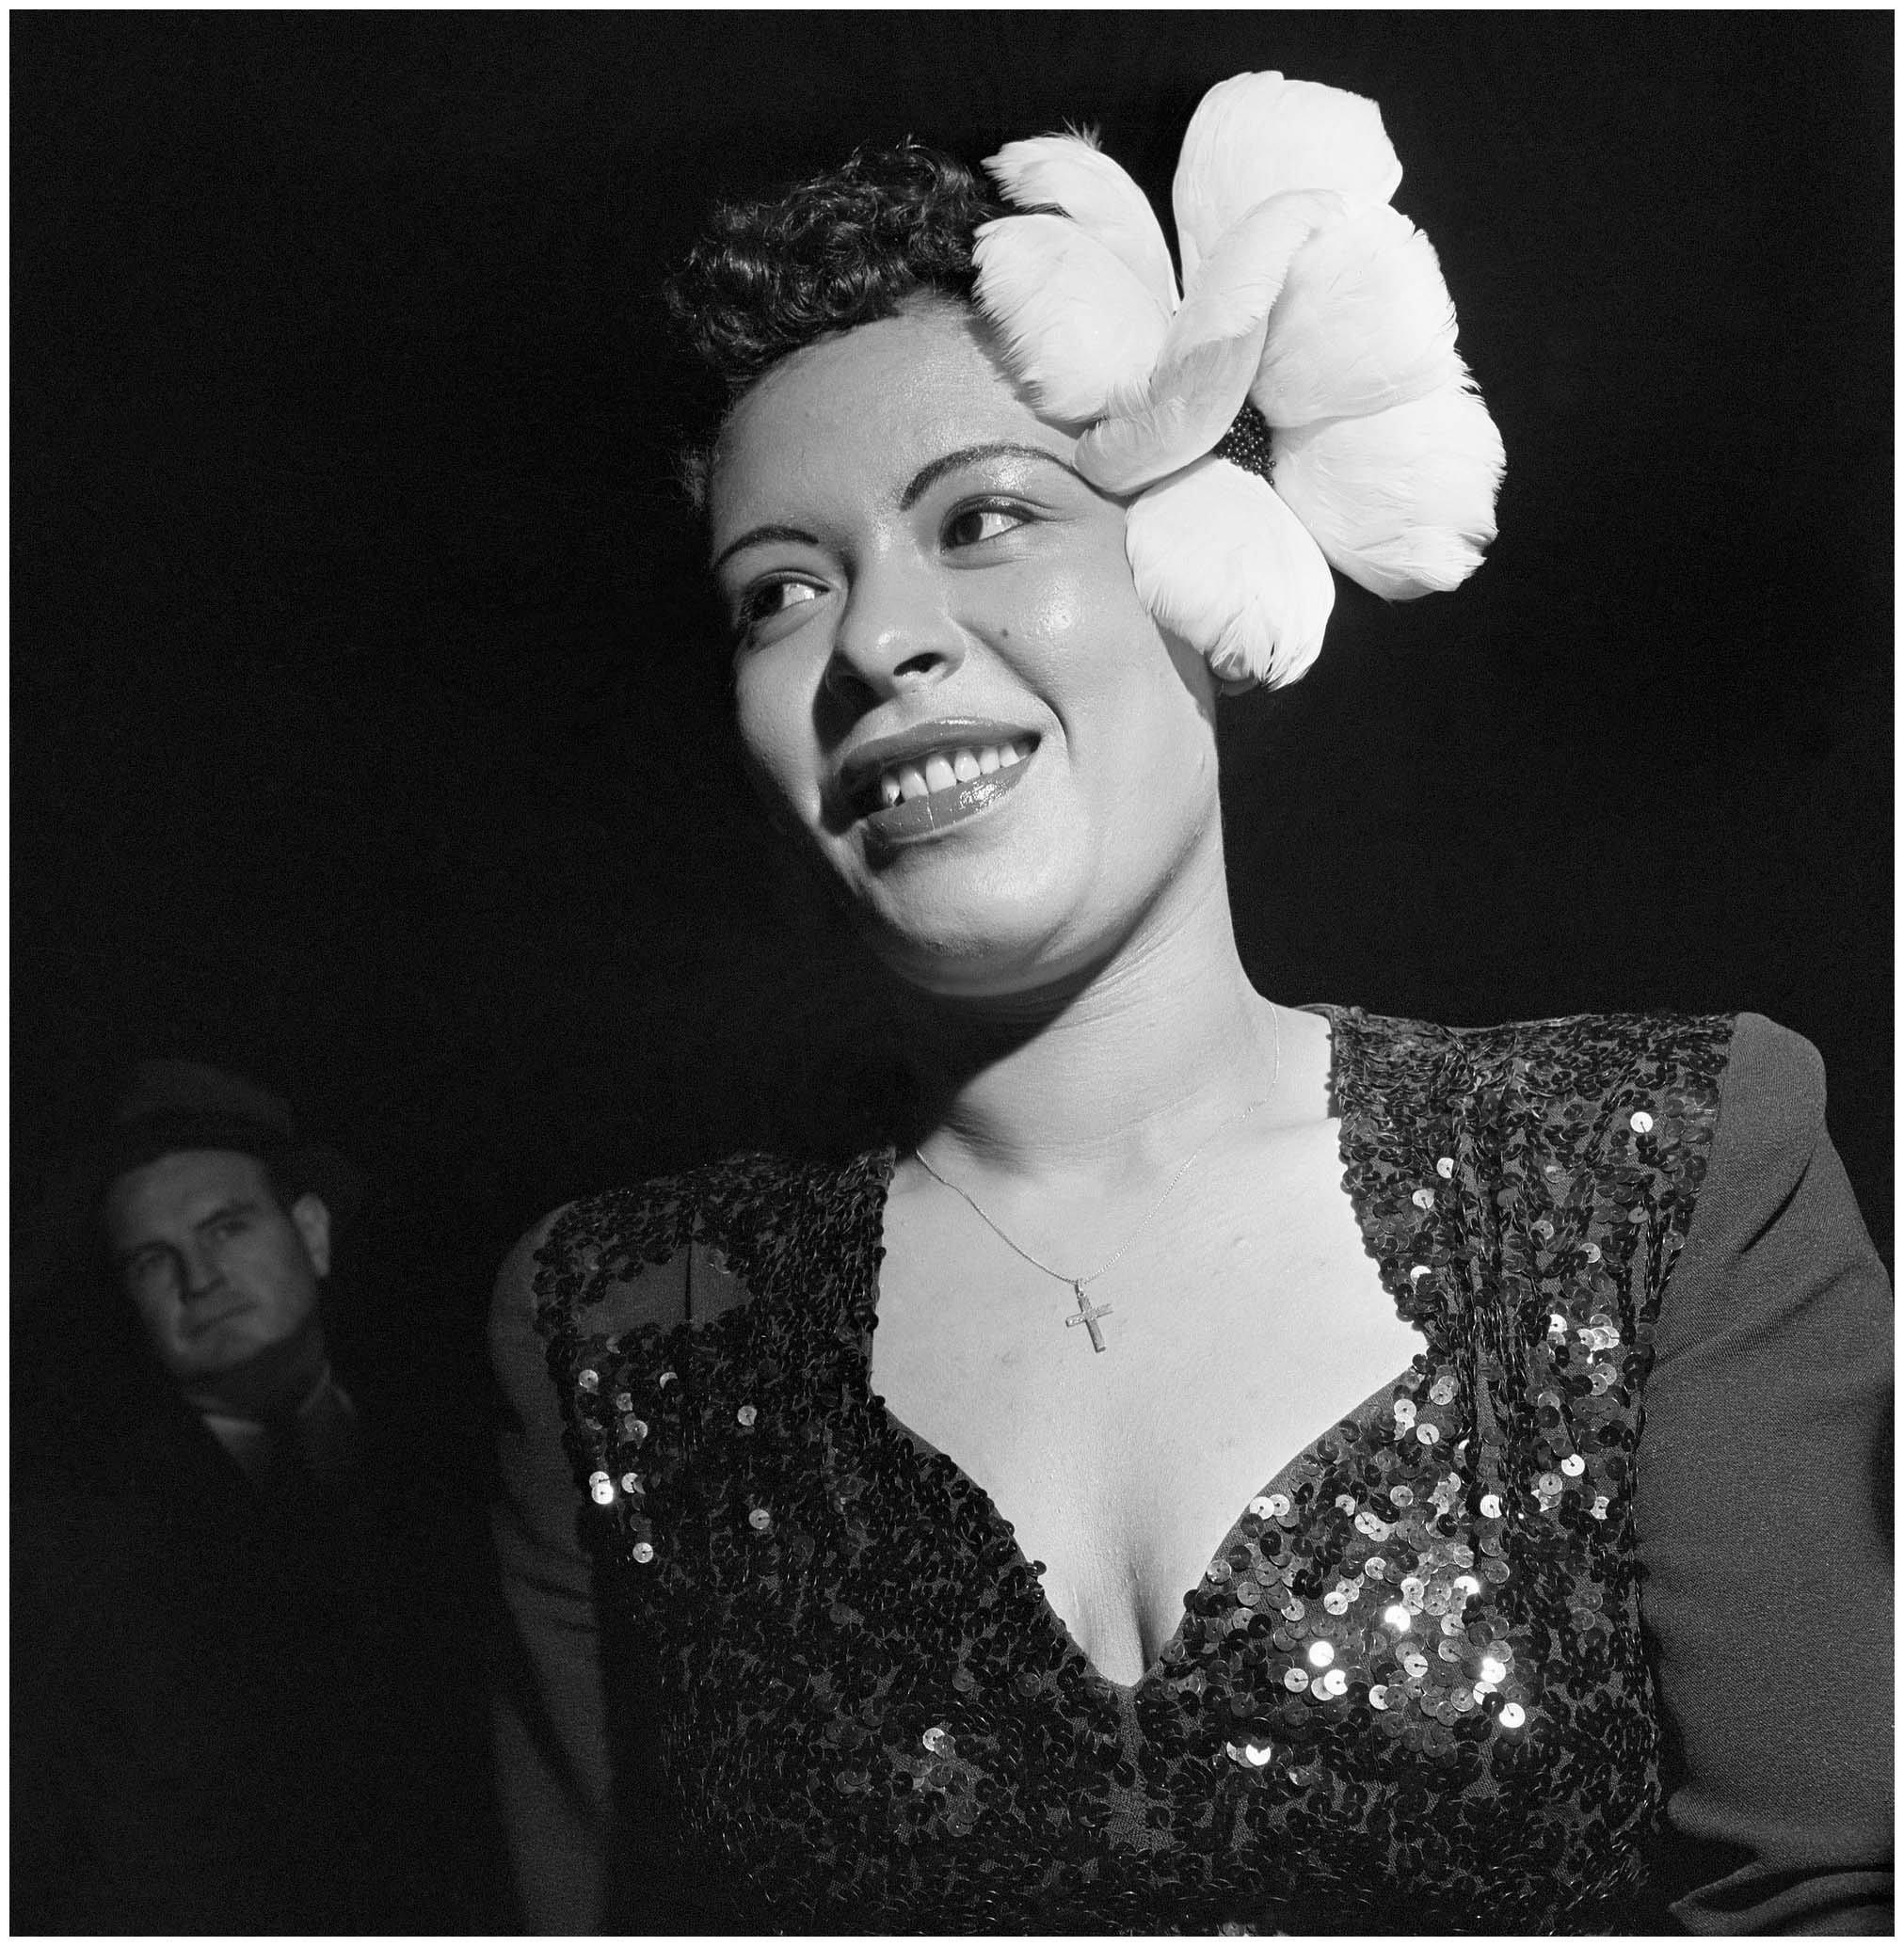 The Best Billie Holiday Wears A Large White Flower In Her Hair Pictures